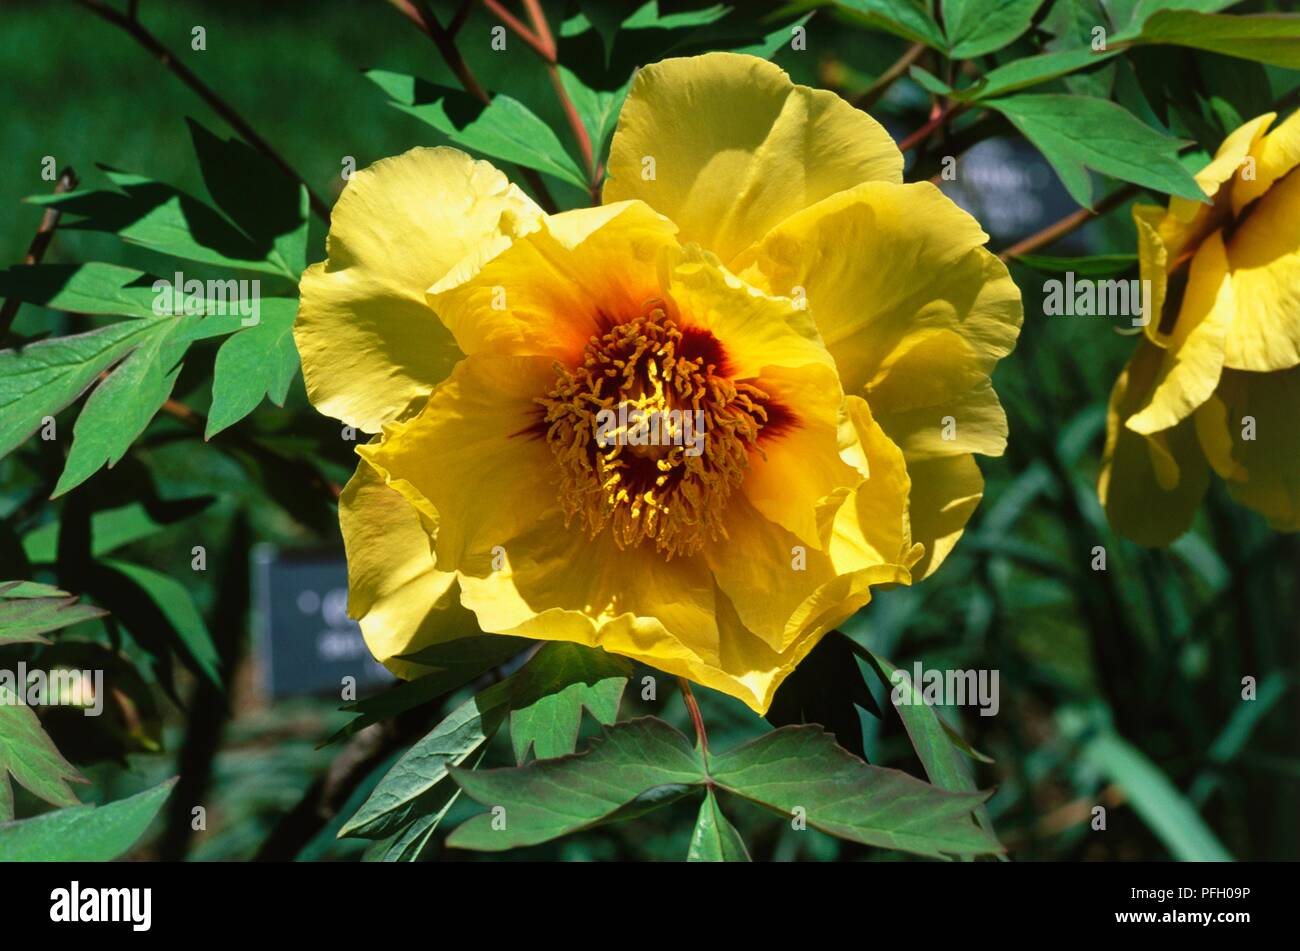 Paeonia Roman Child Tree Peony Yellow Flower Head Close Up